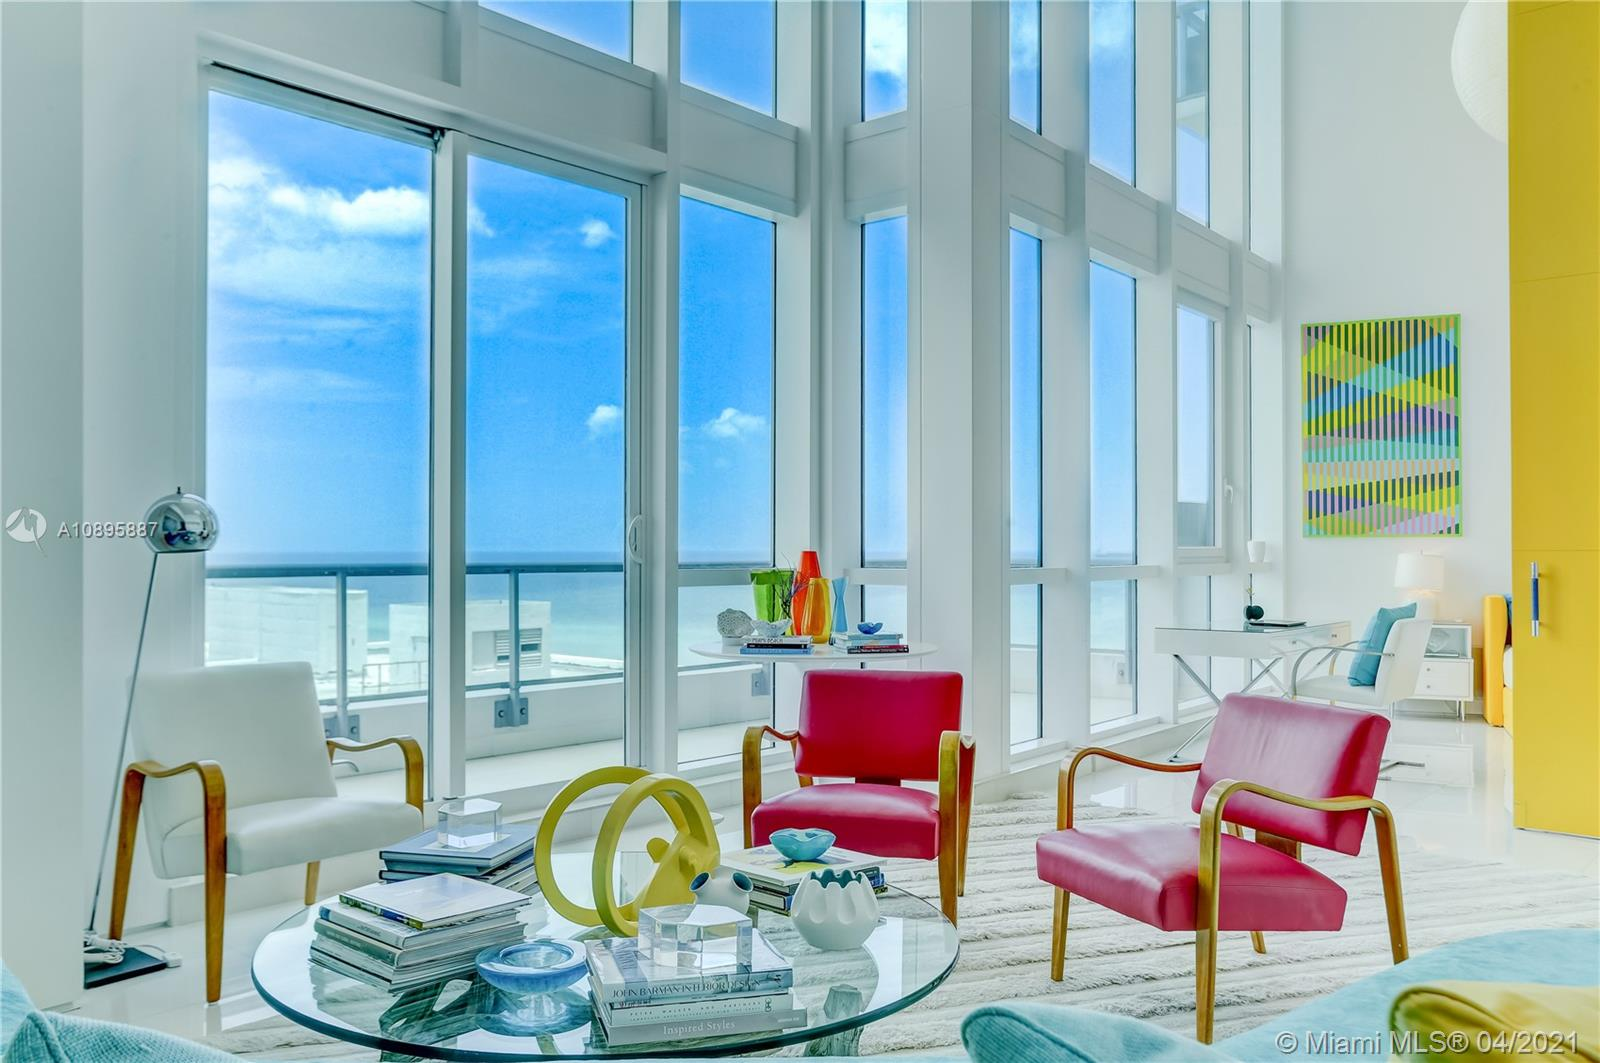 Stunning ocean views from soaring 20 ft ceilings in this famous designer finished condo. Spacious 1565 sq ft interior was featured in Architectural Digest. White floors & kitchen highlight the blue ocean all around. Northeast view of the ocean, the city, and the nearby W hotel.  Setai is one of the LEADING HOTELS OF THE WORLD Situated directly one the ocean offering 3 pools, private beach service, 2 restaurants, full gym and spa, full bar, concierge, valet. unparalleled service. Stroll the Boardwalk to all attractions of South beach: RENT DAILY, WEEKLY,  MONTHLY:  NO RENT RESTRICTIONS.